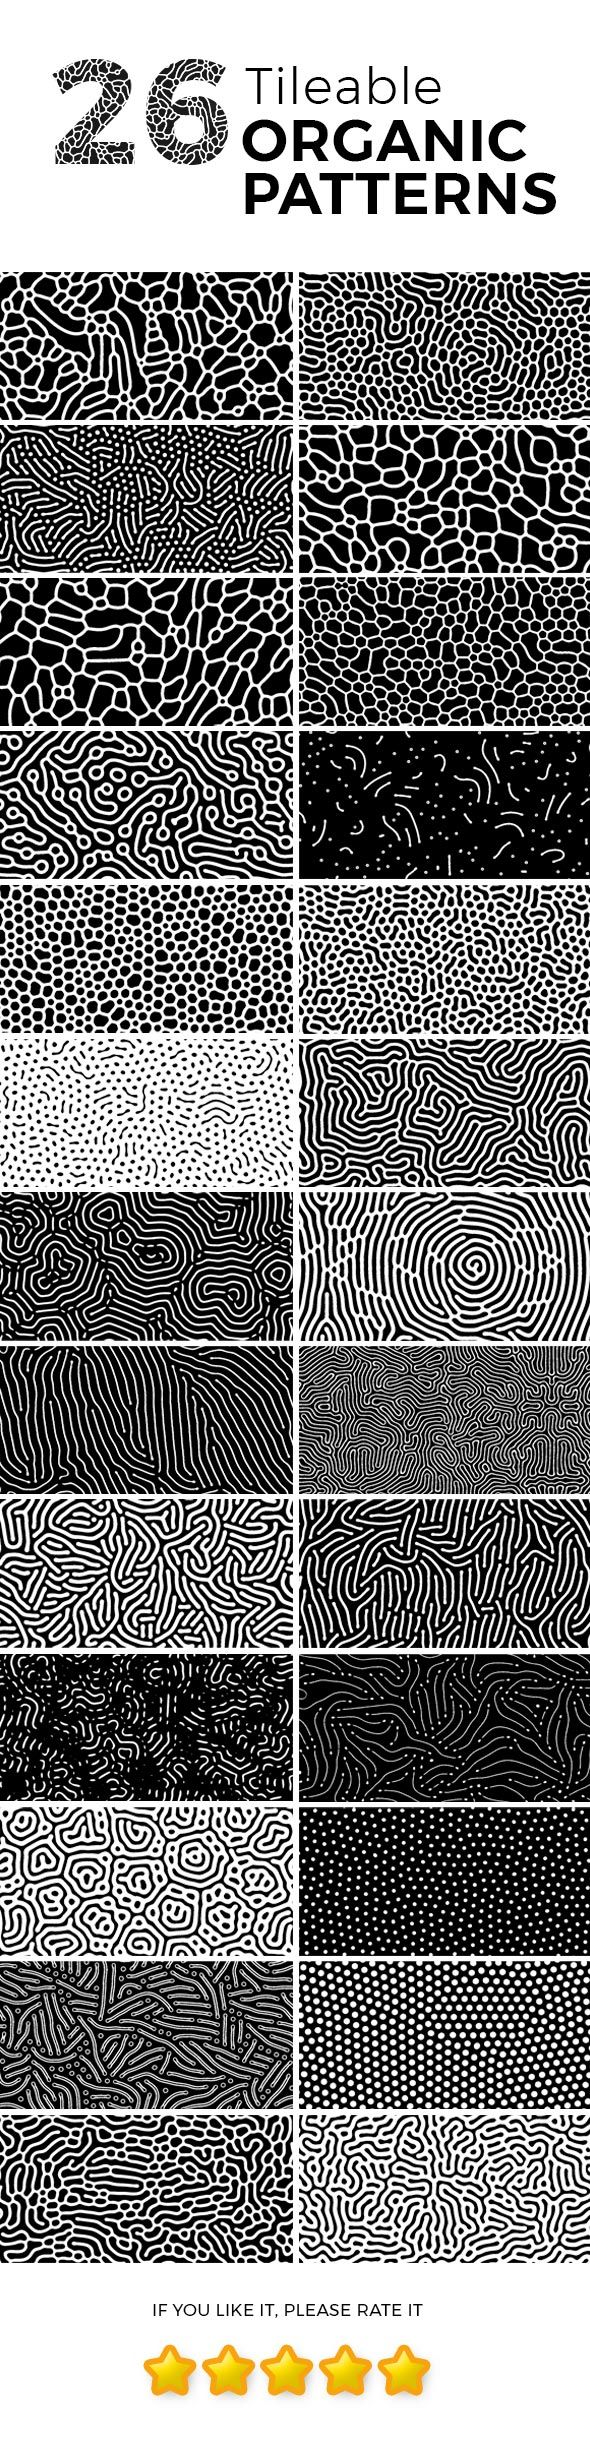 26 Tileable Organic Patterns | texture in 2019 | Pattern